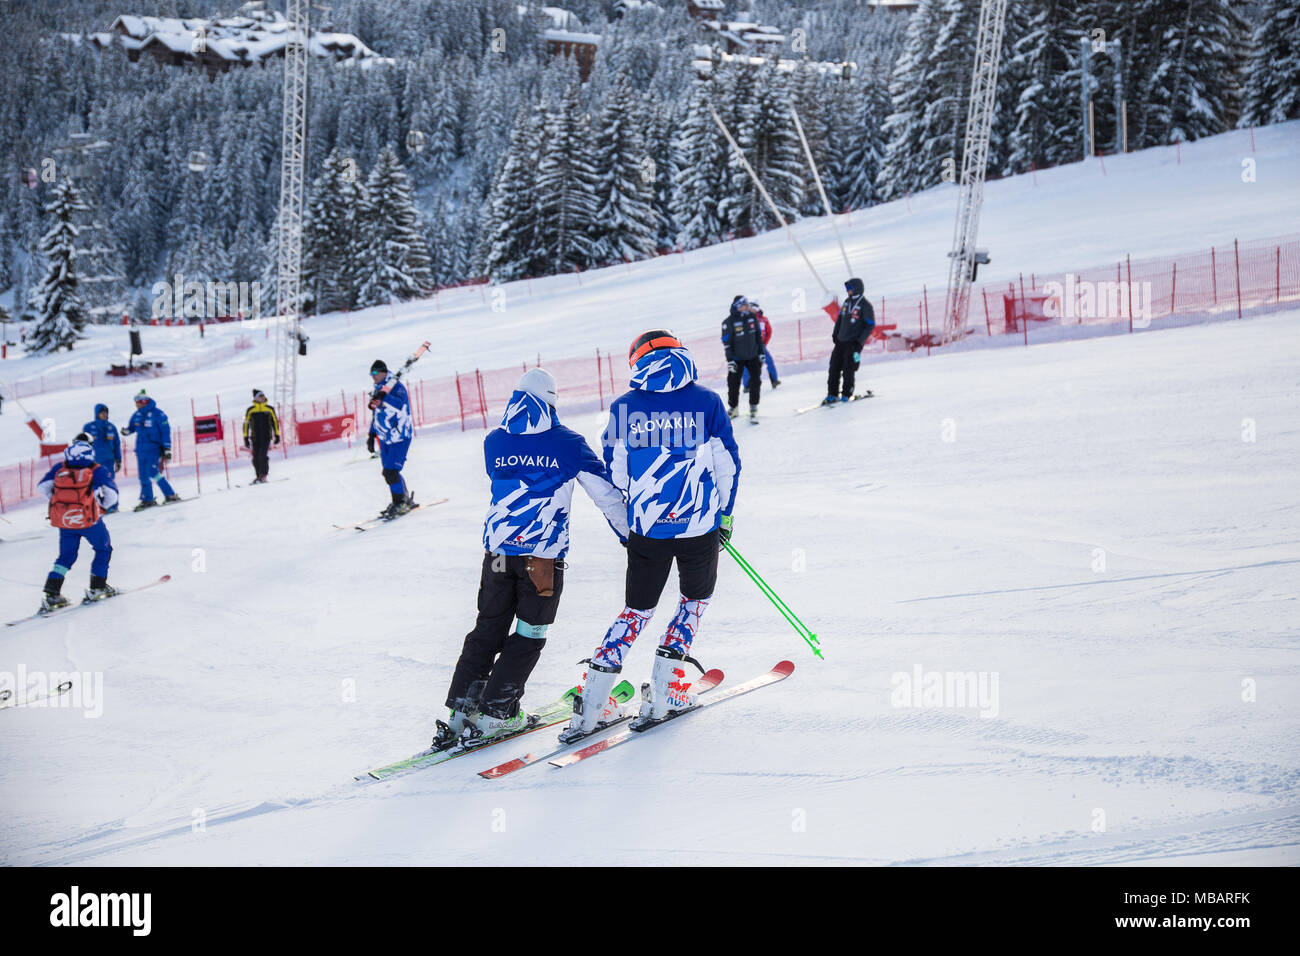 Petra Vlhova in Courchevel course inspection with her coach prior to the Giant Slalom Ski World Cup the 20th of December 2017 - Stock Image